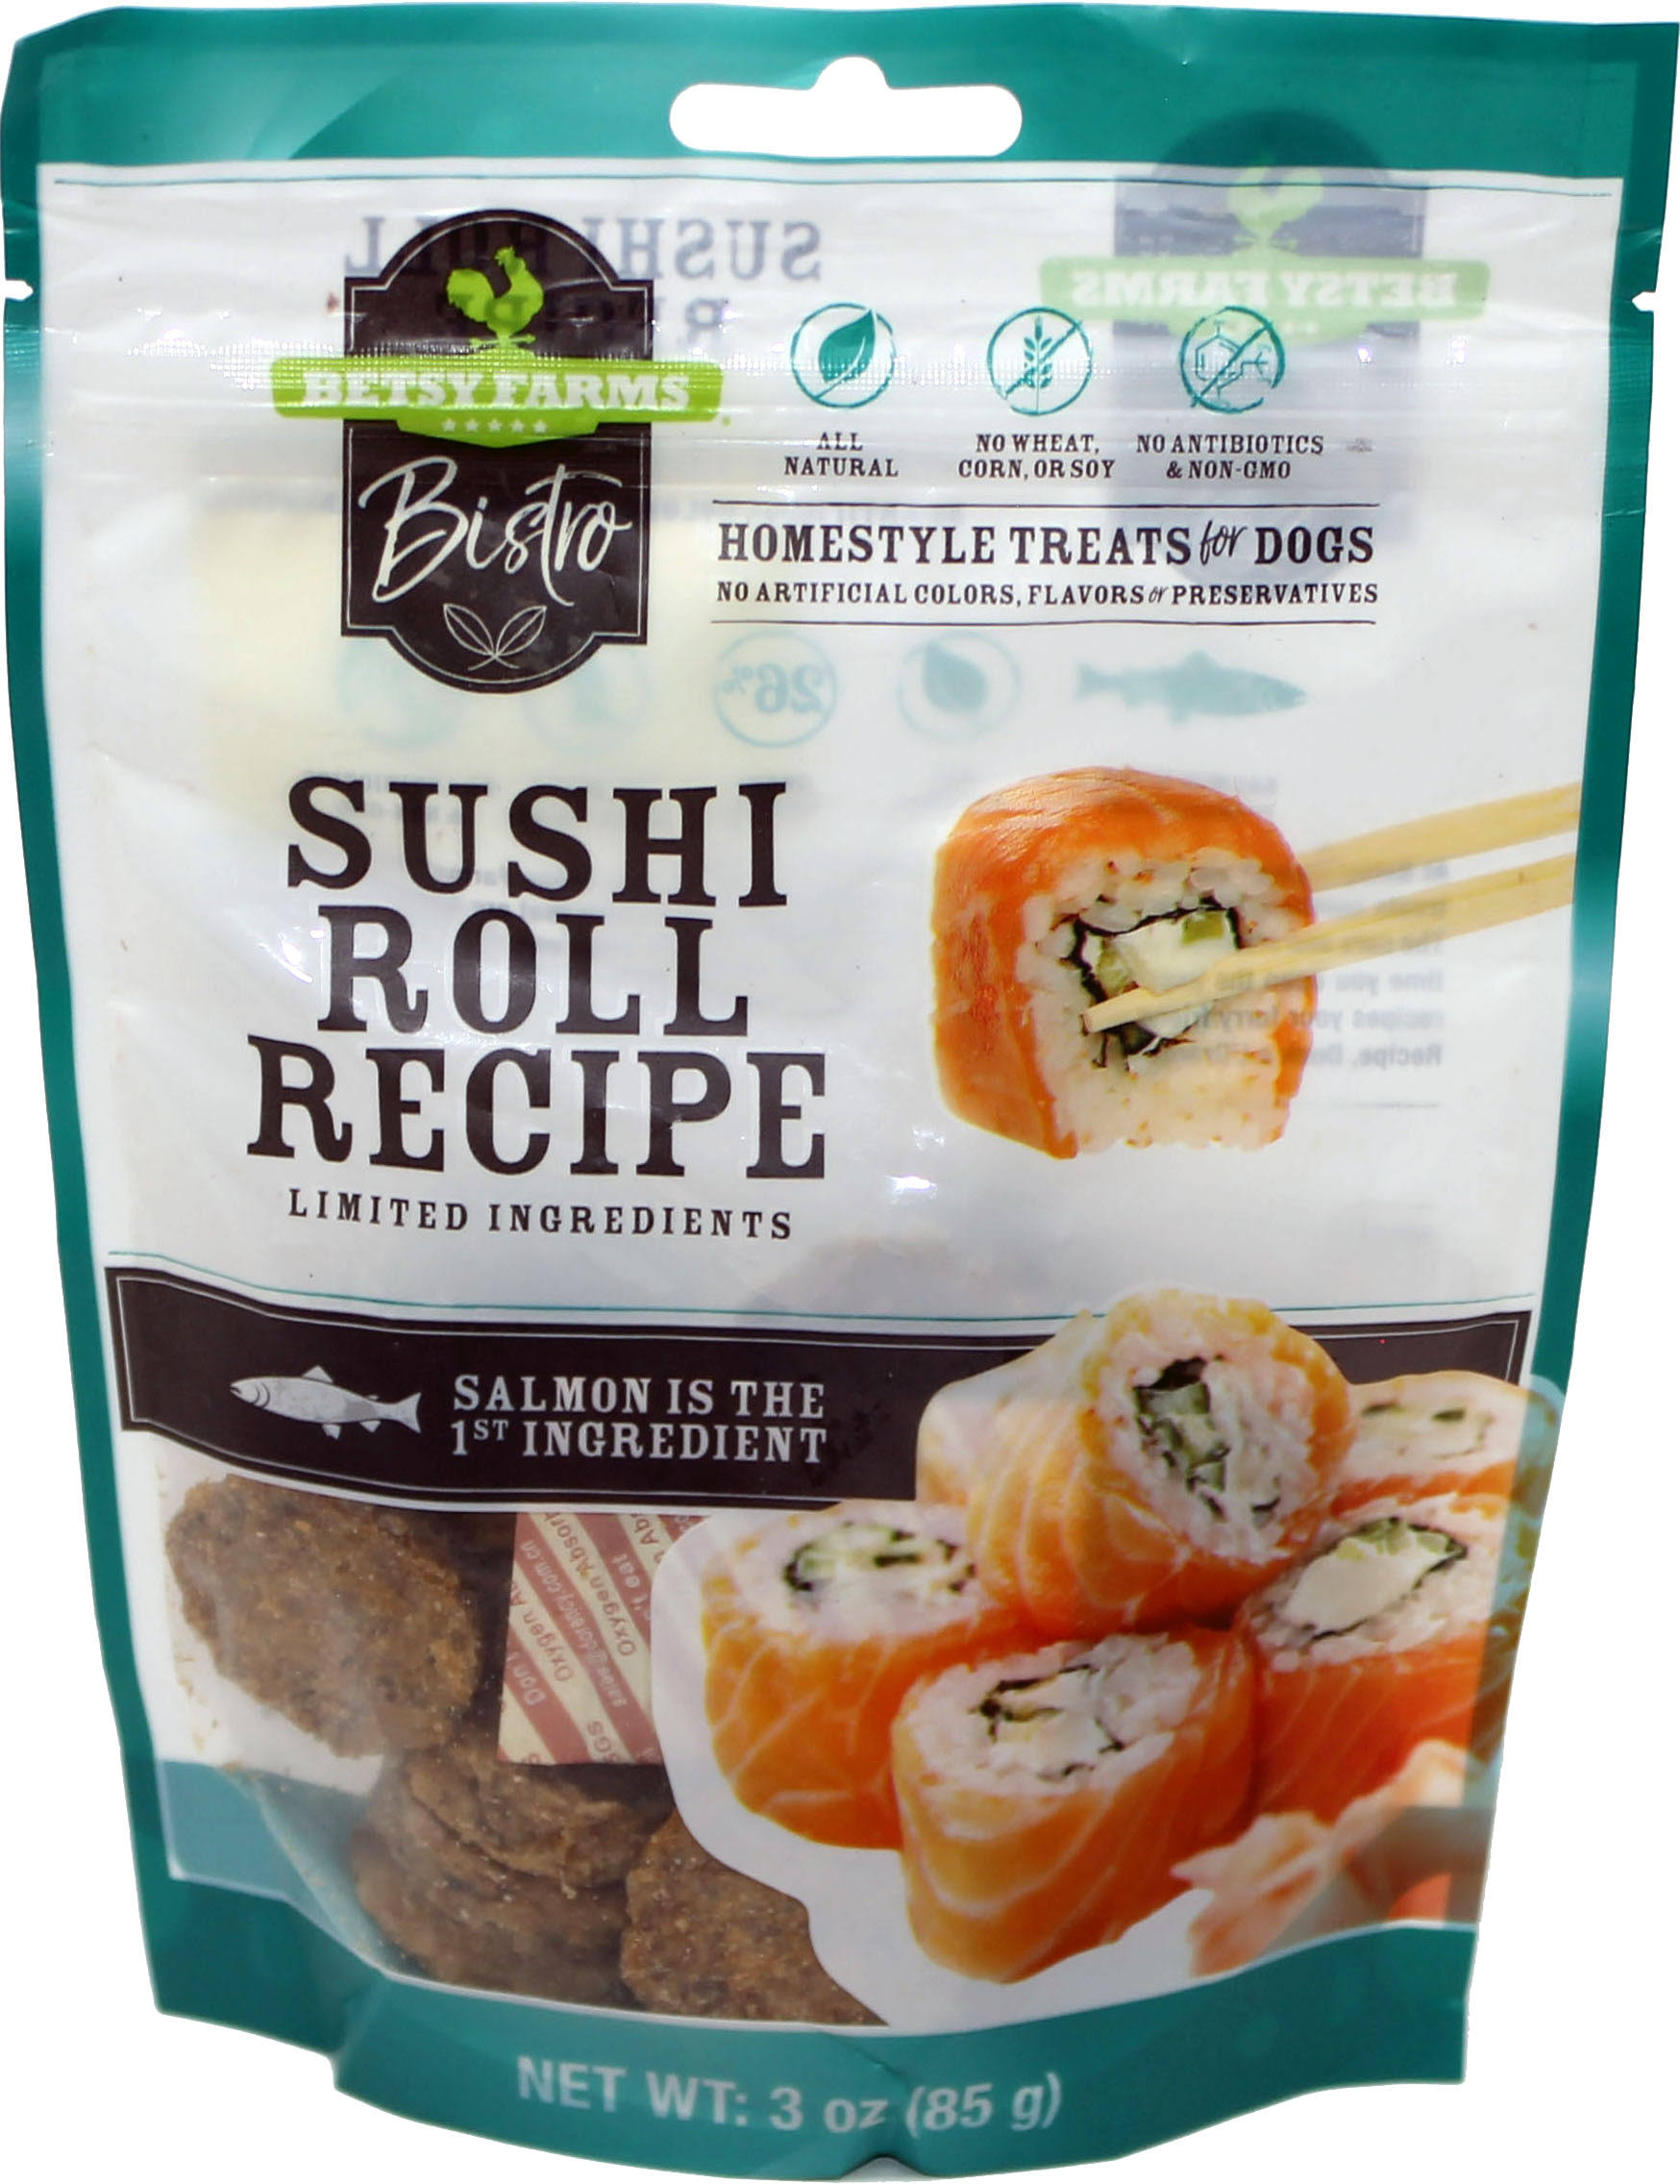 Betsy Farms Bistro Treat for Dogs, Sushi Roll Recipe, Homestyle - 3 oz